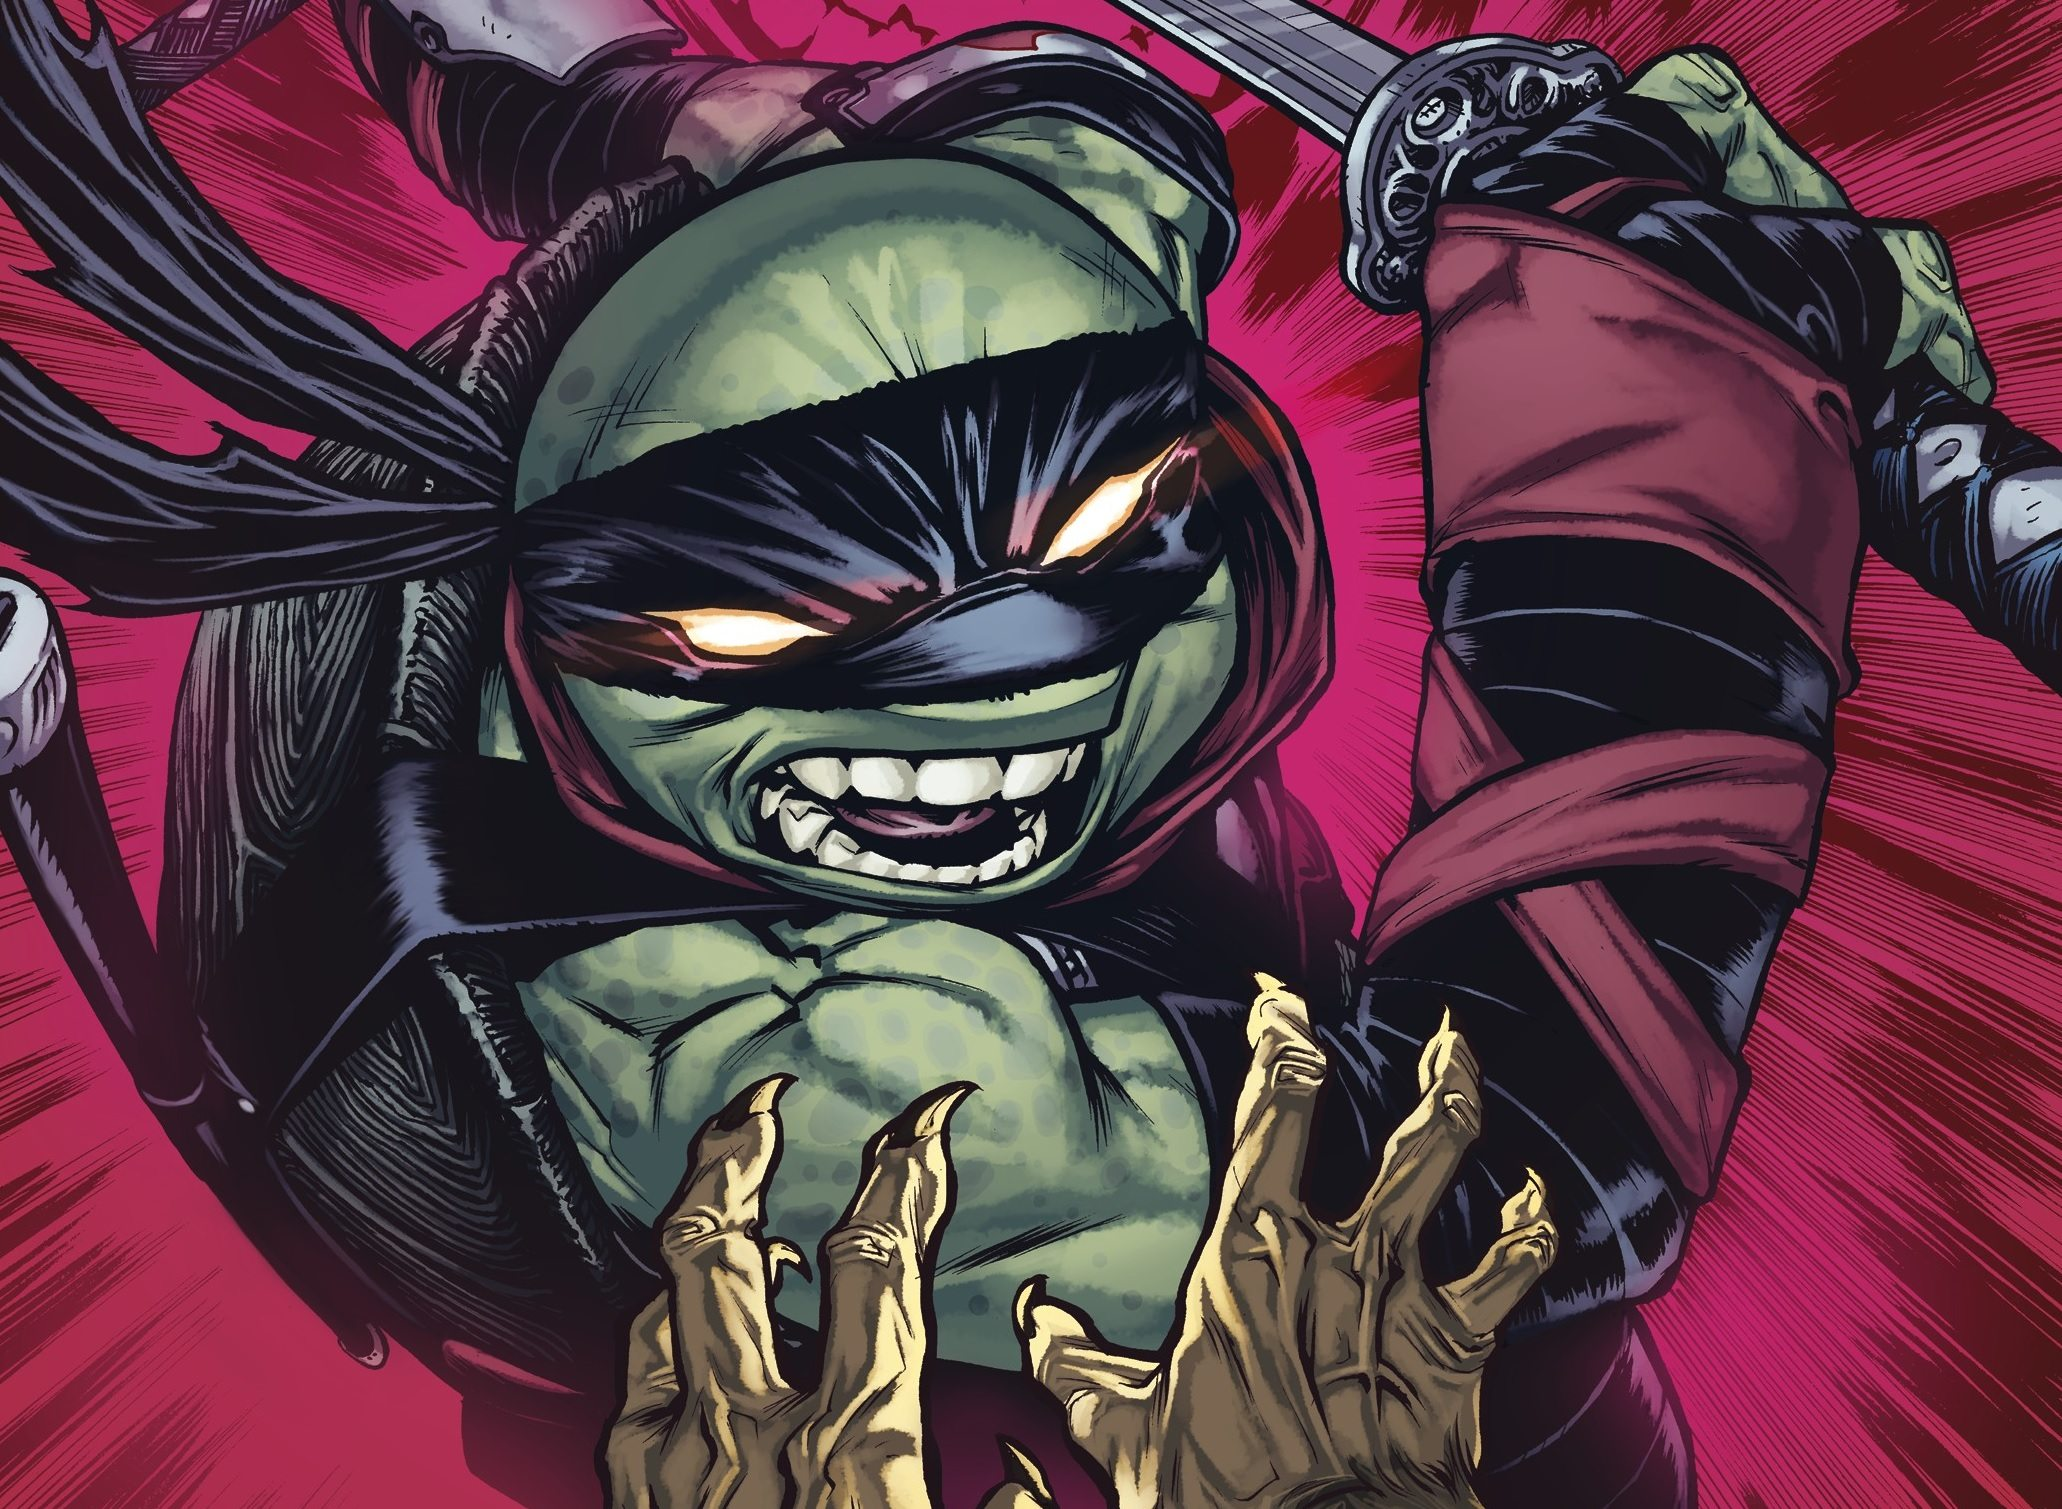 TMNT #36 Cover  Image courtesy of IDW Publishing